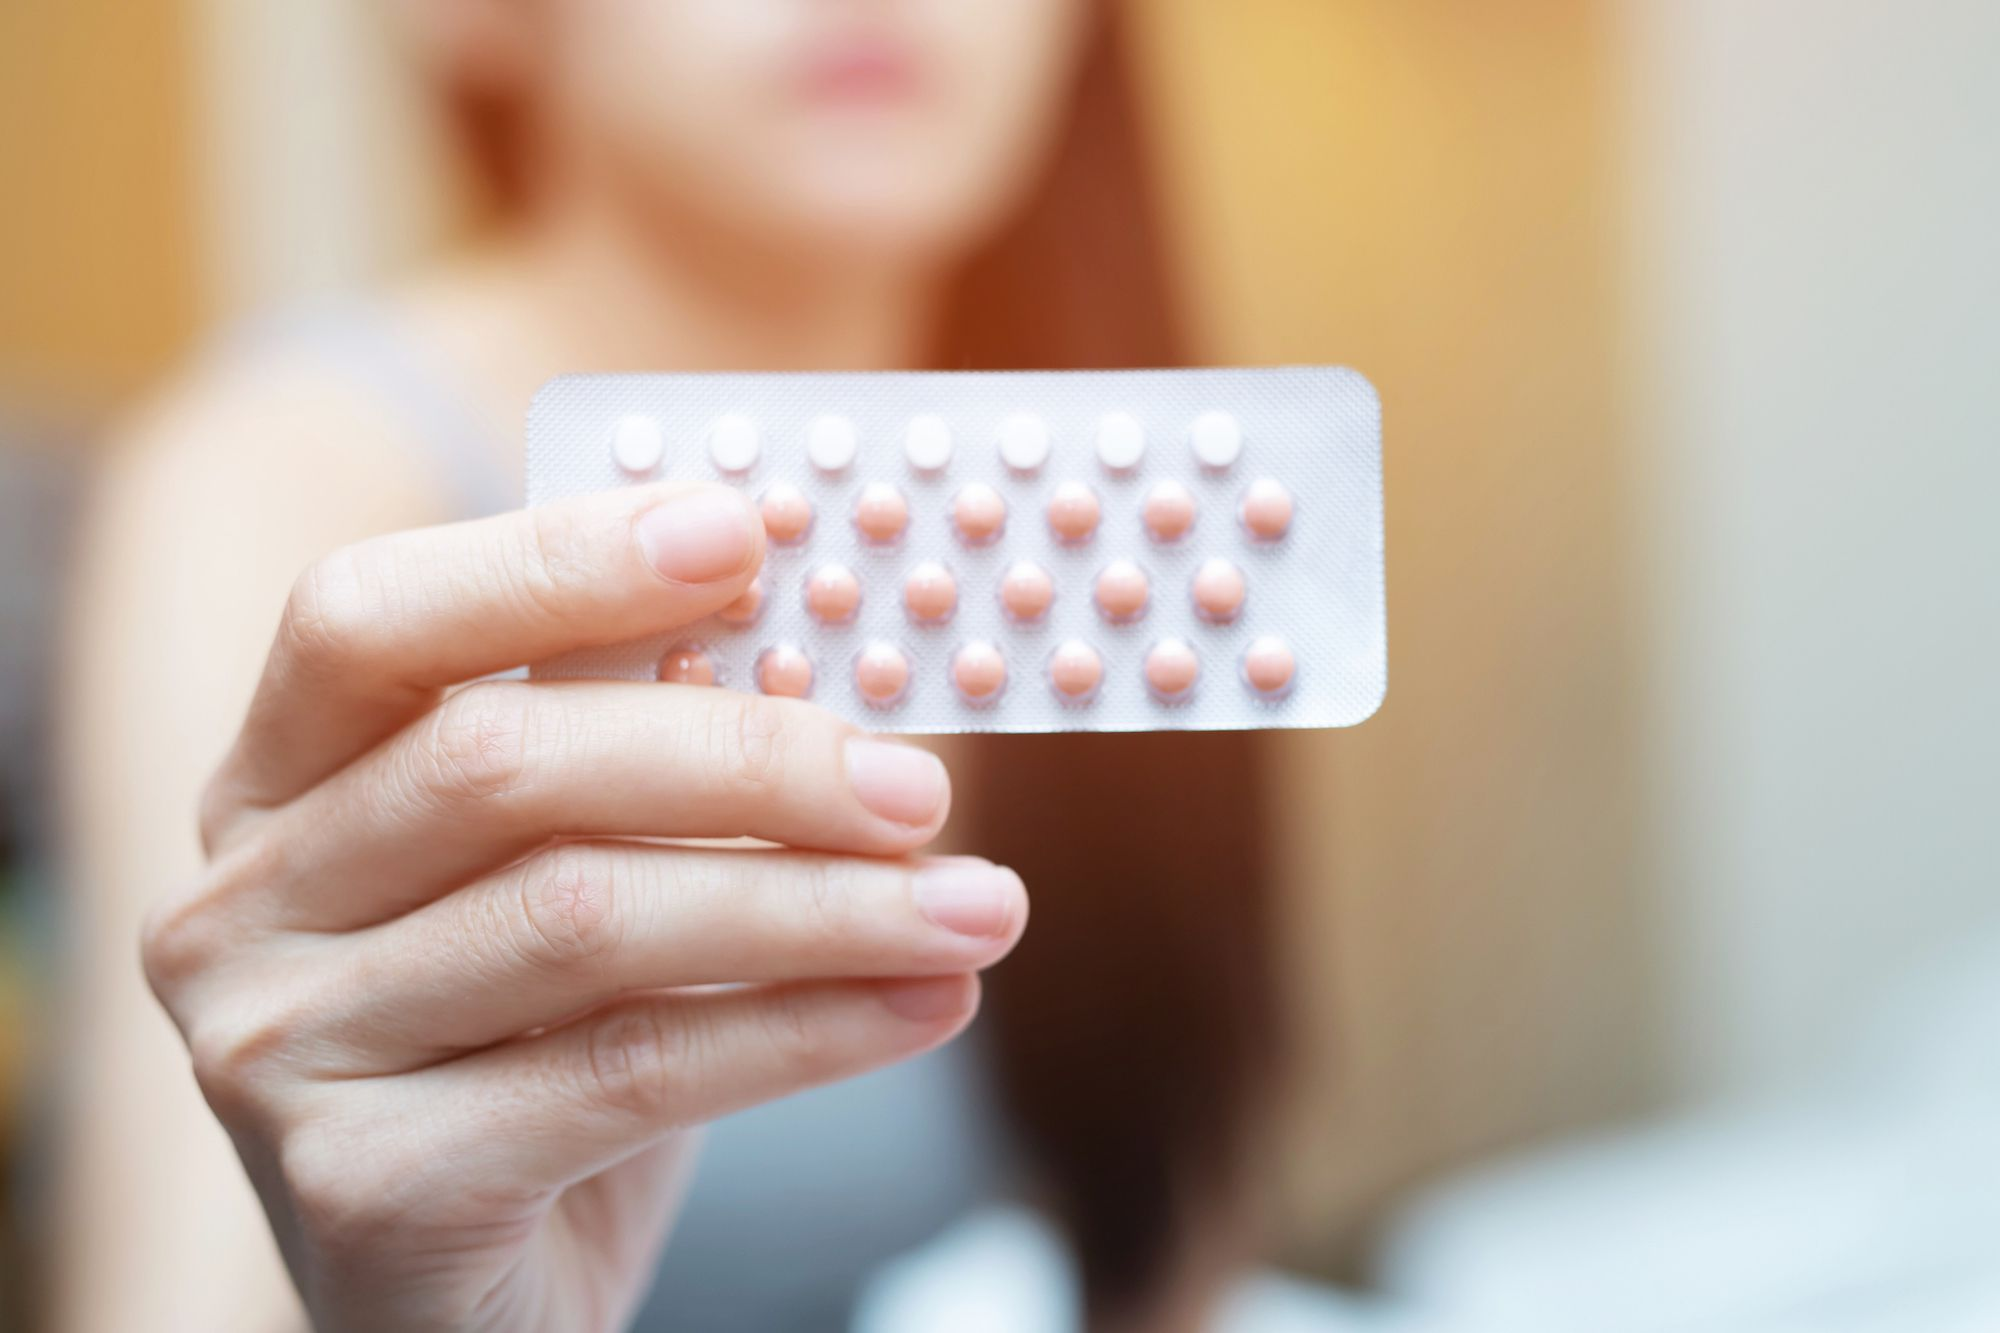 Woman holding up birth control